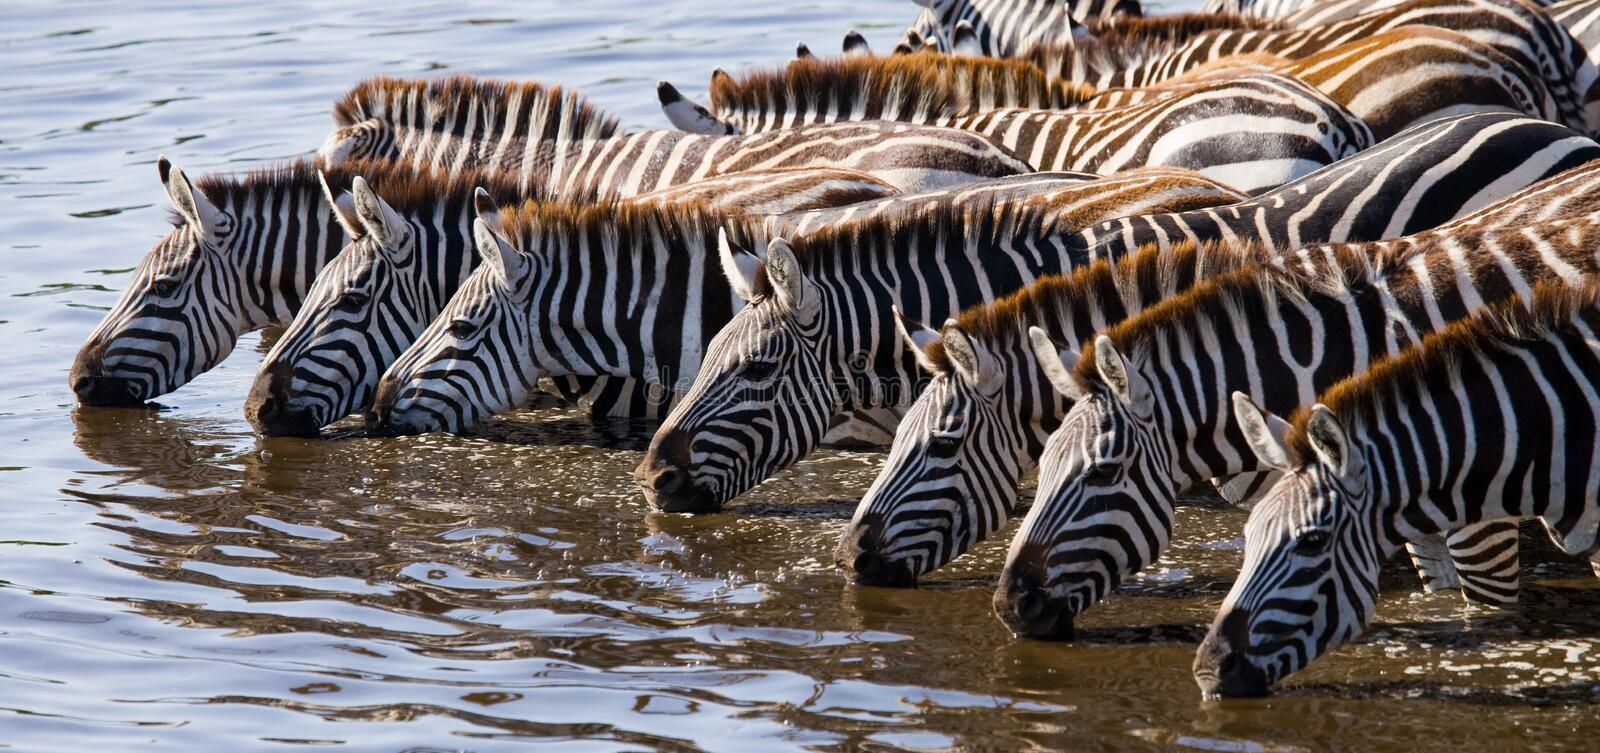 Group of zebras drinking water from the river. Kenya. Tanzania. National Park. Serengeti. Maasai Mara. An excellent illustration royalty free stock photos